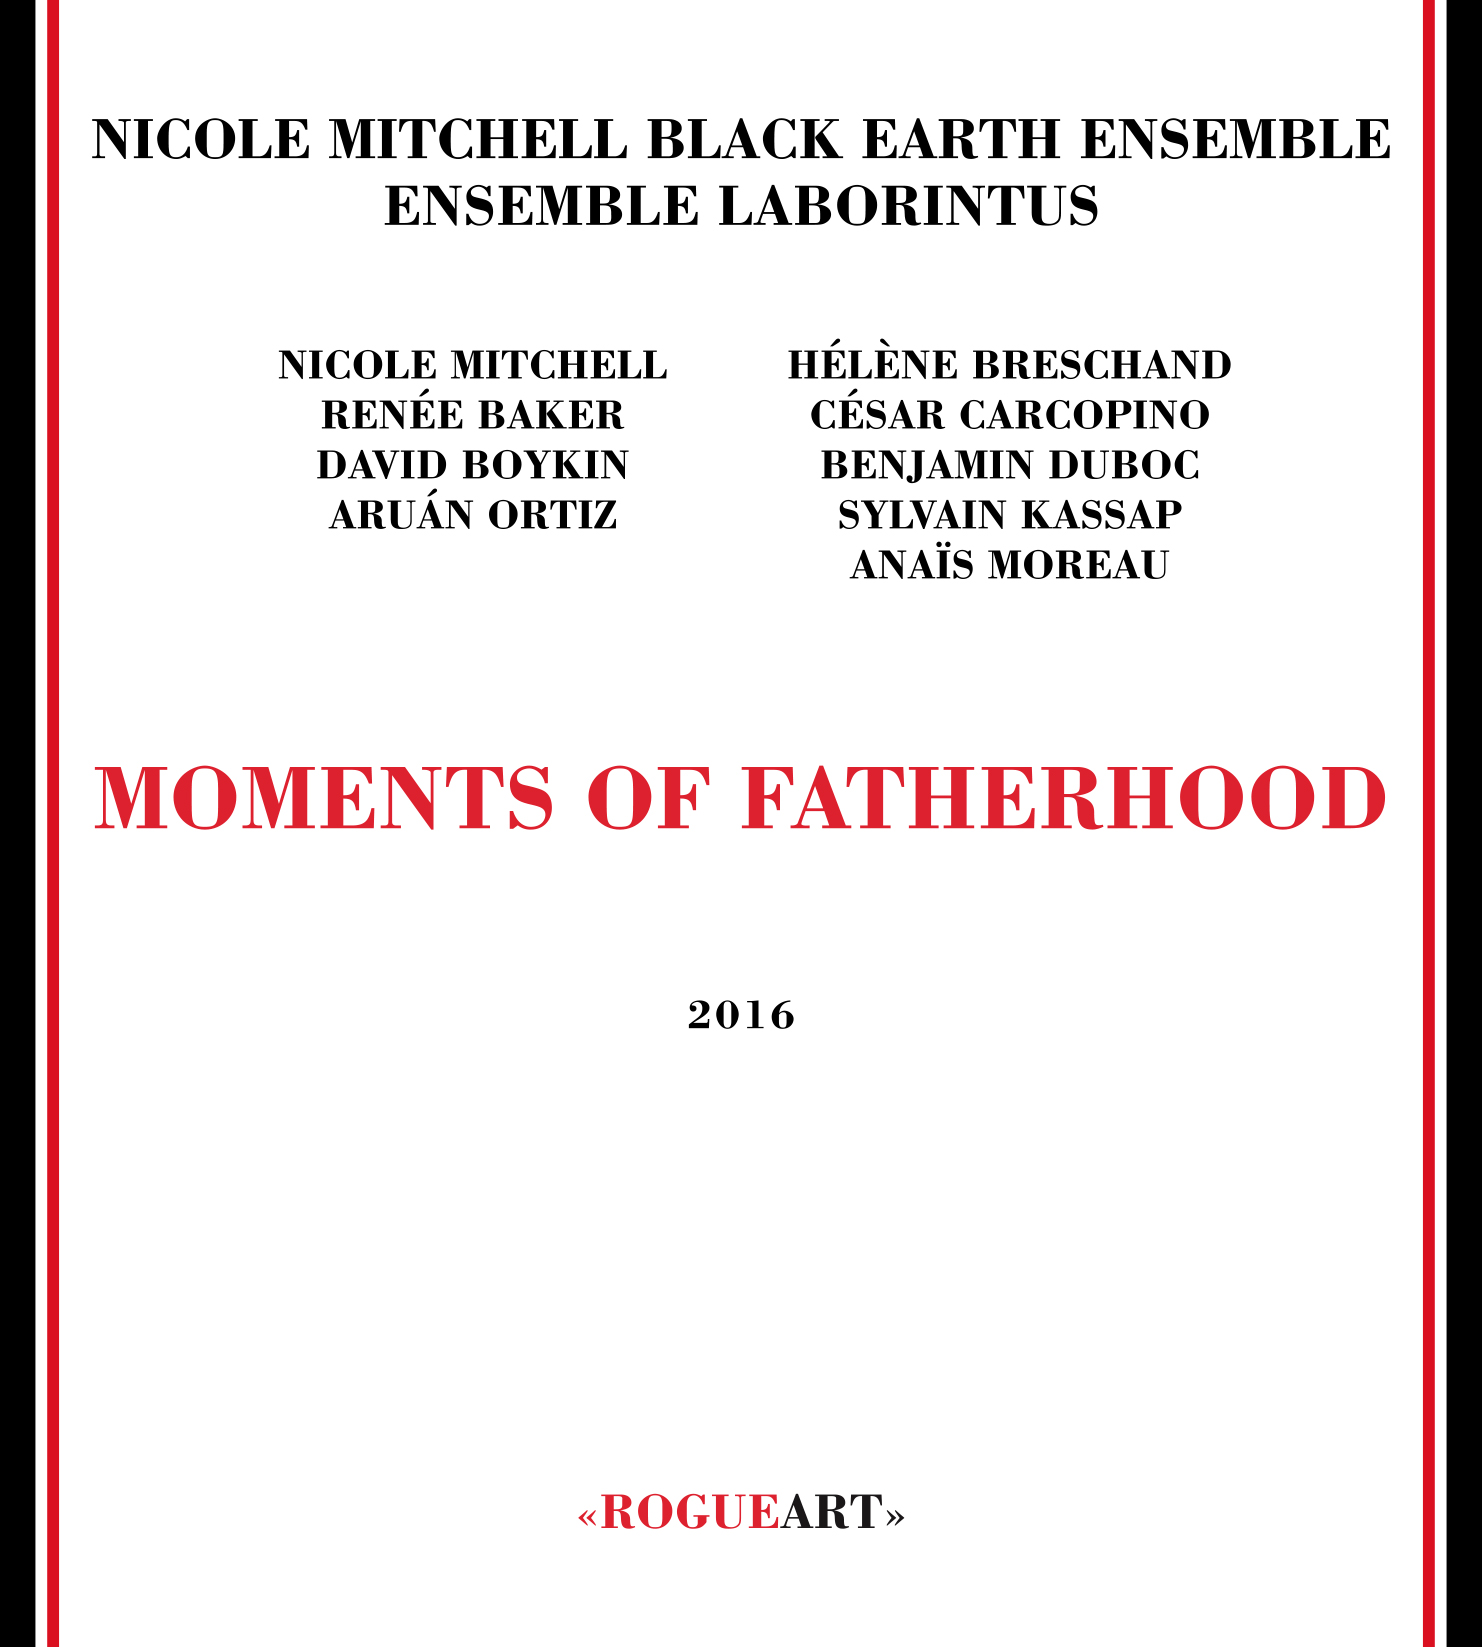 Front cover of the album MOMENTS OF FATHERHOOD